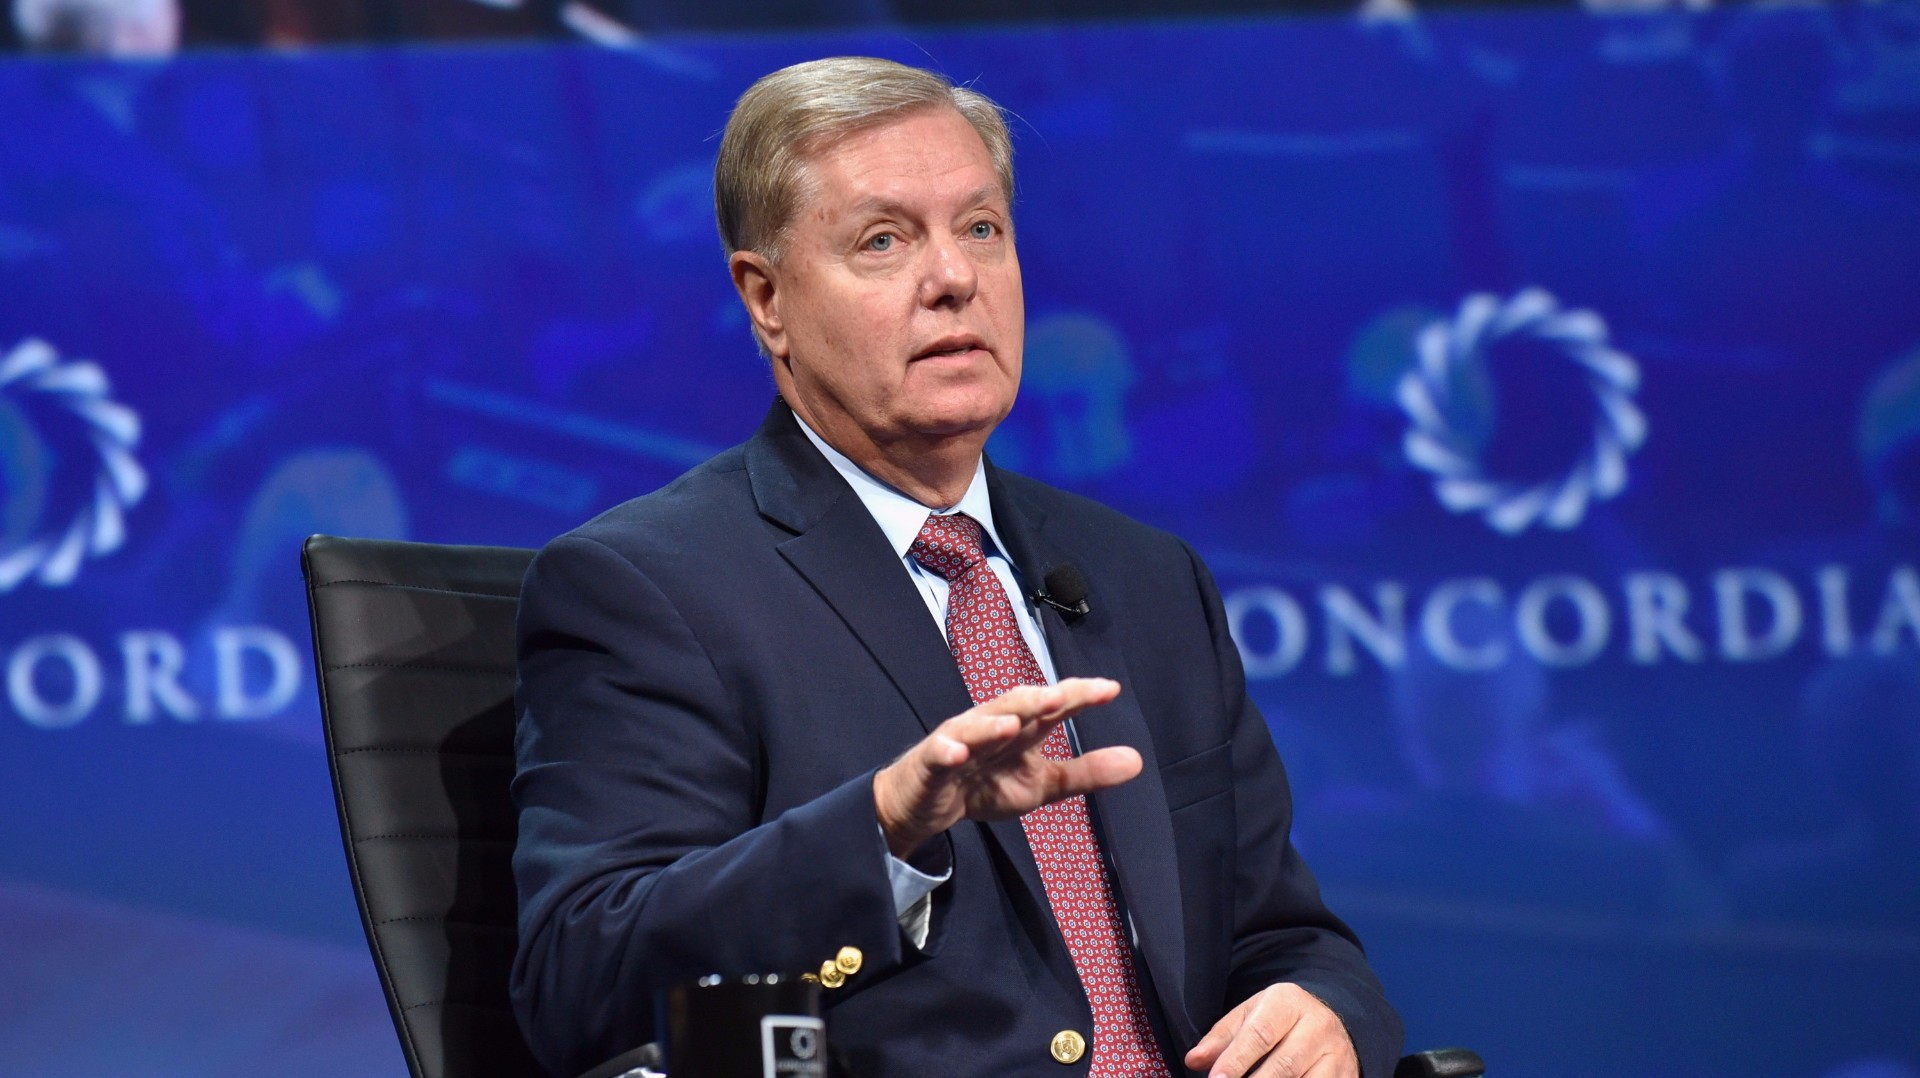 lindsey graham - photo #33